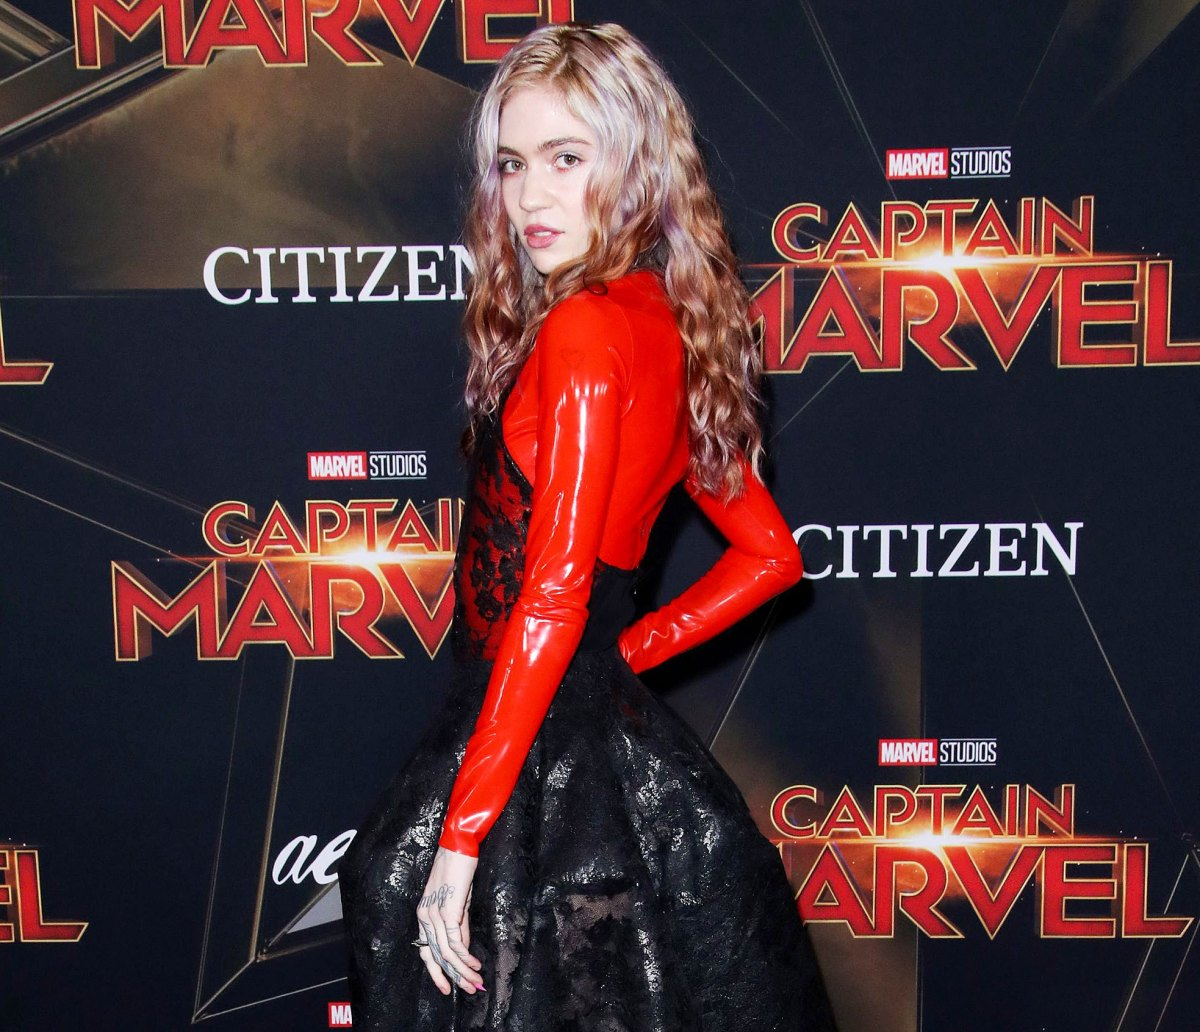 At the 2019 Captain Marvel, LA